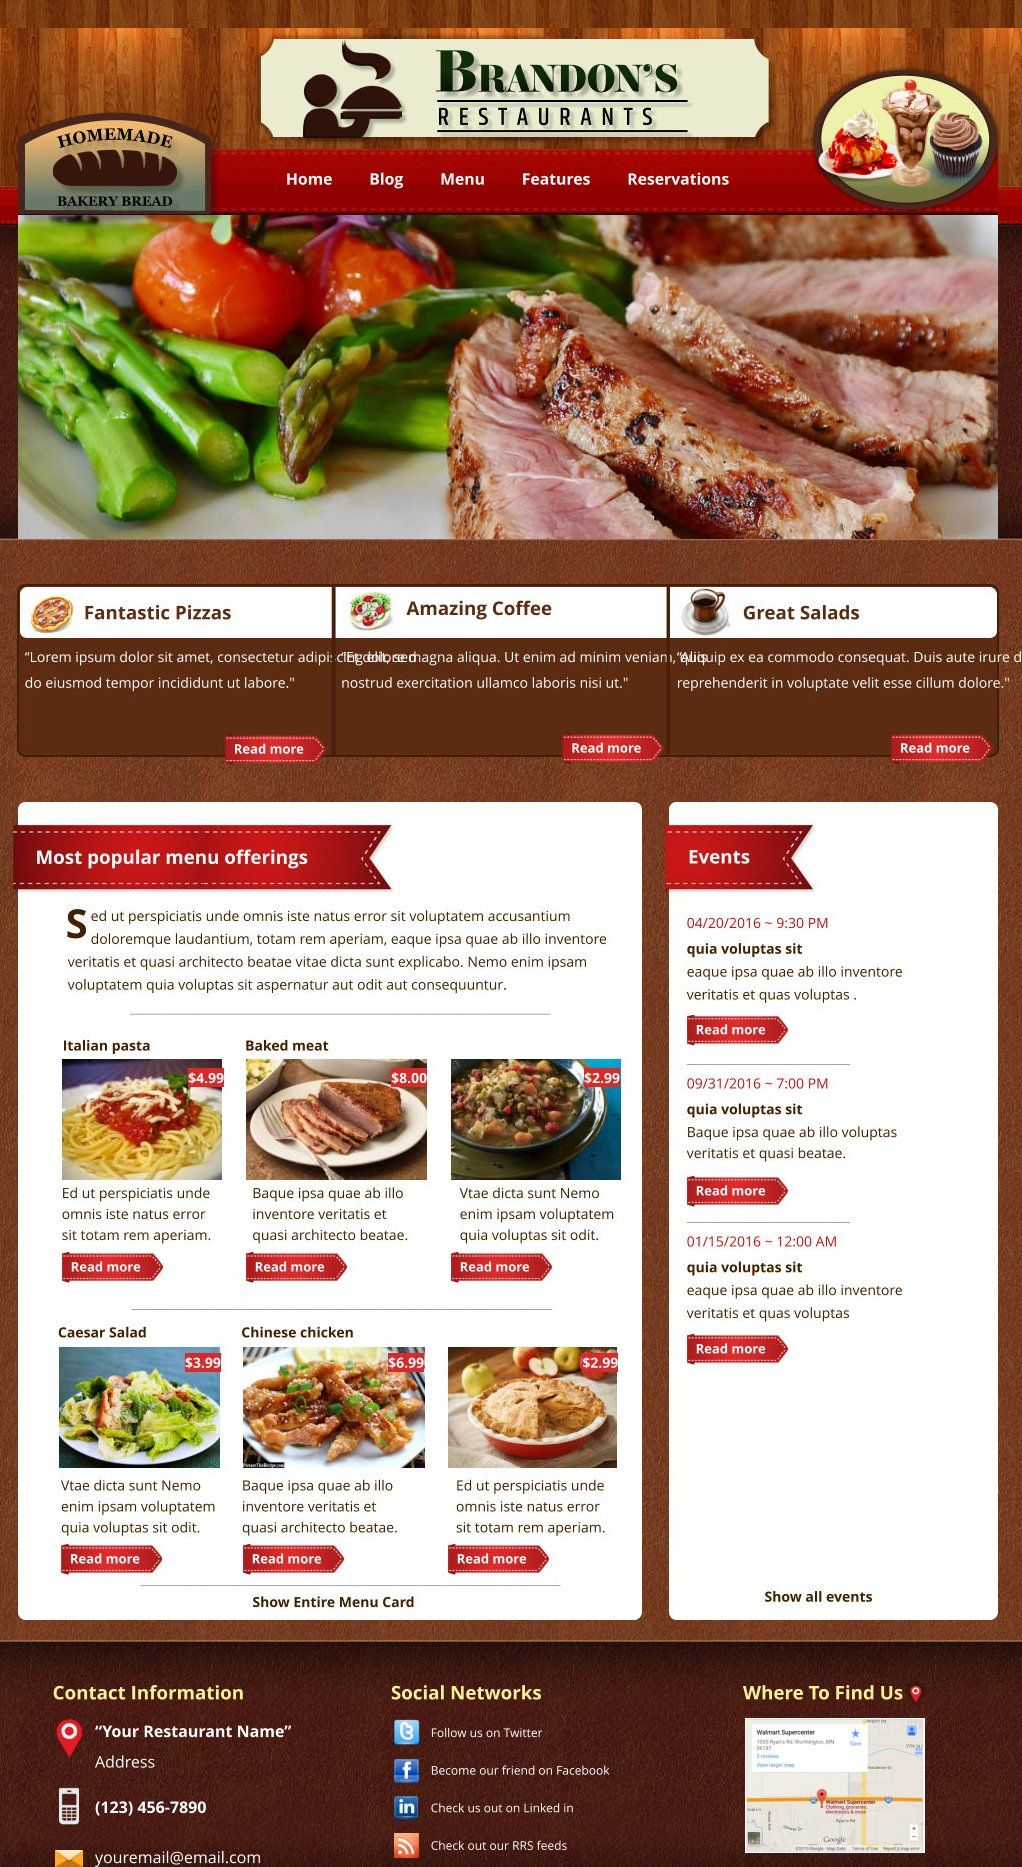 Xara Web Designer 365 Premium Templates - Restaurant Catering Food Beverages Meals Menus Dining Service Event Group Party Meeting Business Waiter Waitress Kitchen Eat Cook Bake Café Diner Inn Eatery Grill Club Shop Lunch Lounge Deli Supper